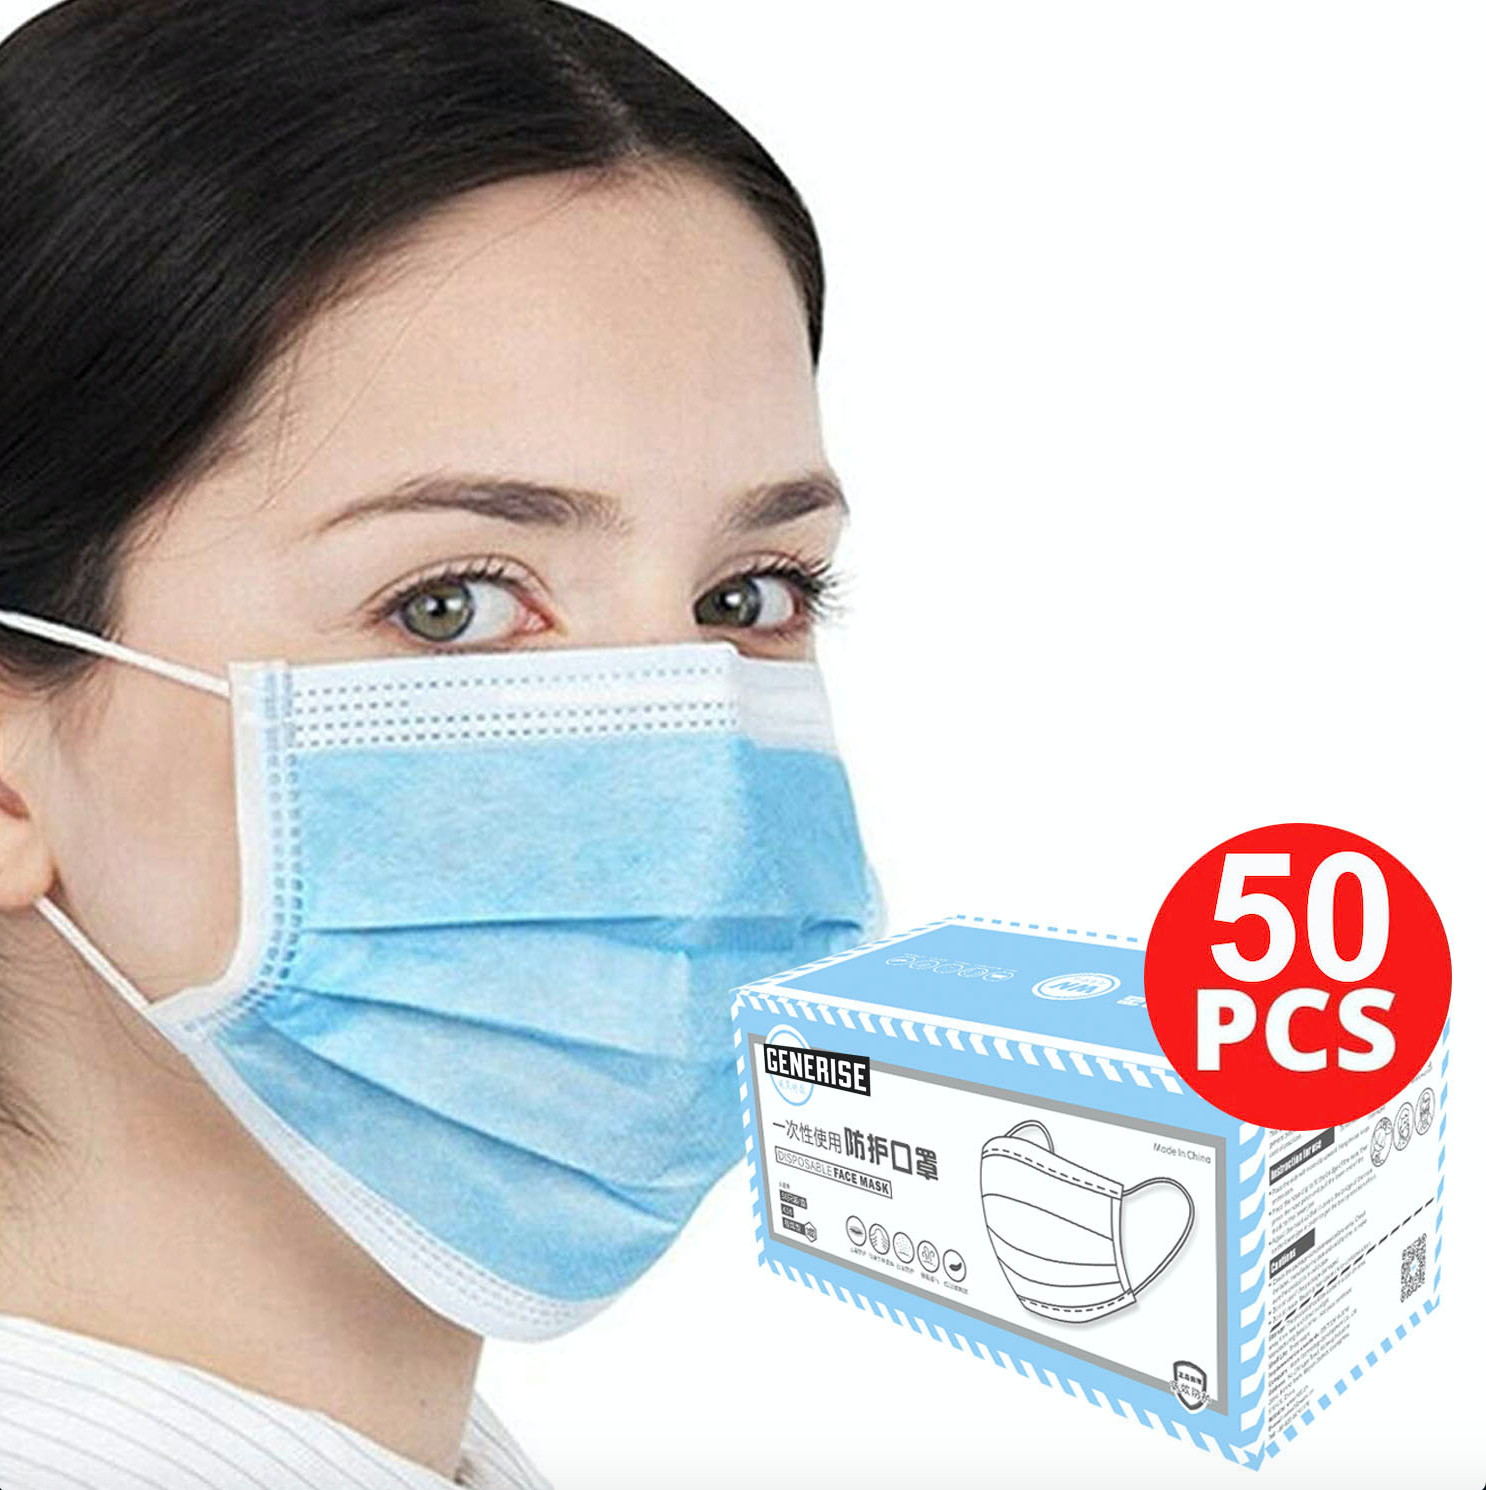 Generise 3 Ply Disposable Face Masks - Blue 50pcs WN, Work Safety Protective Equipment by Generise